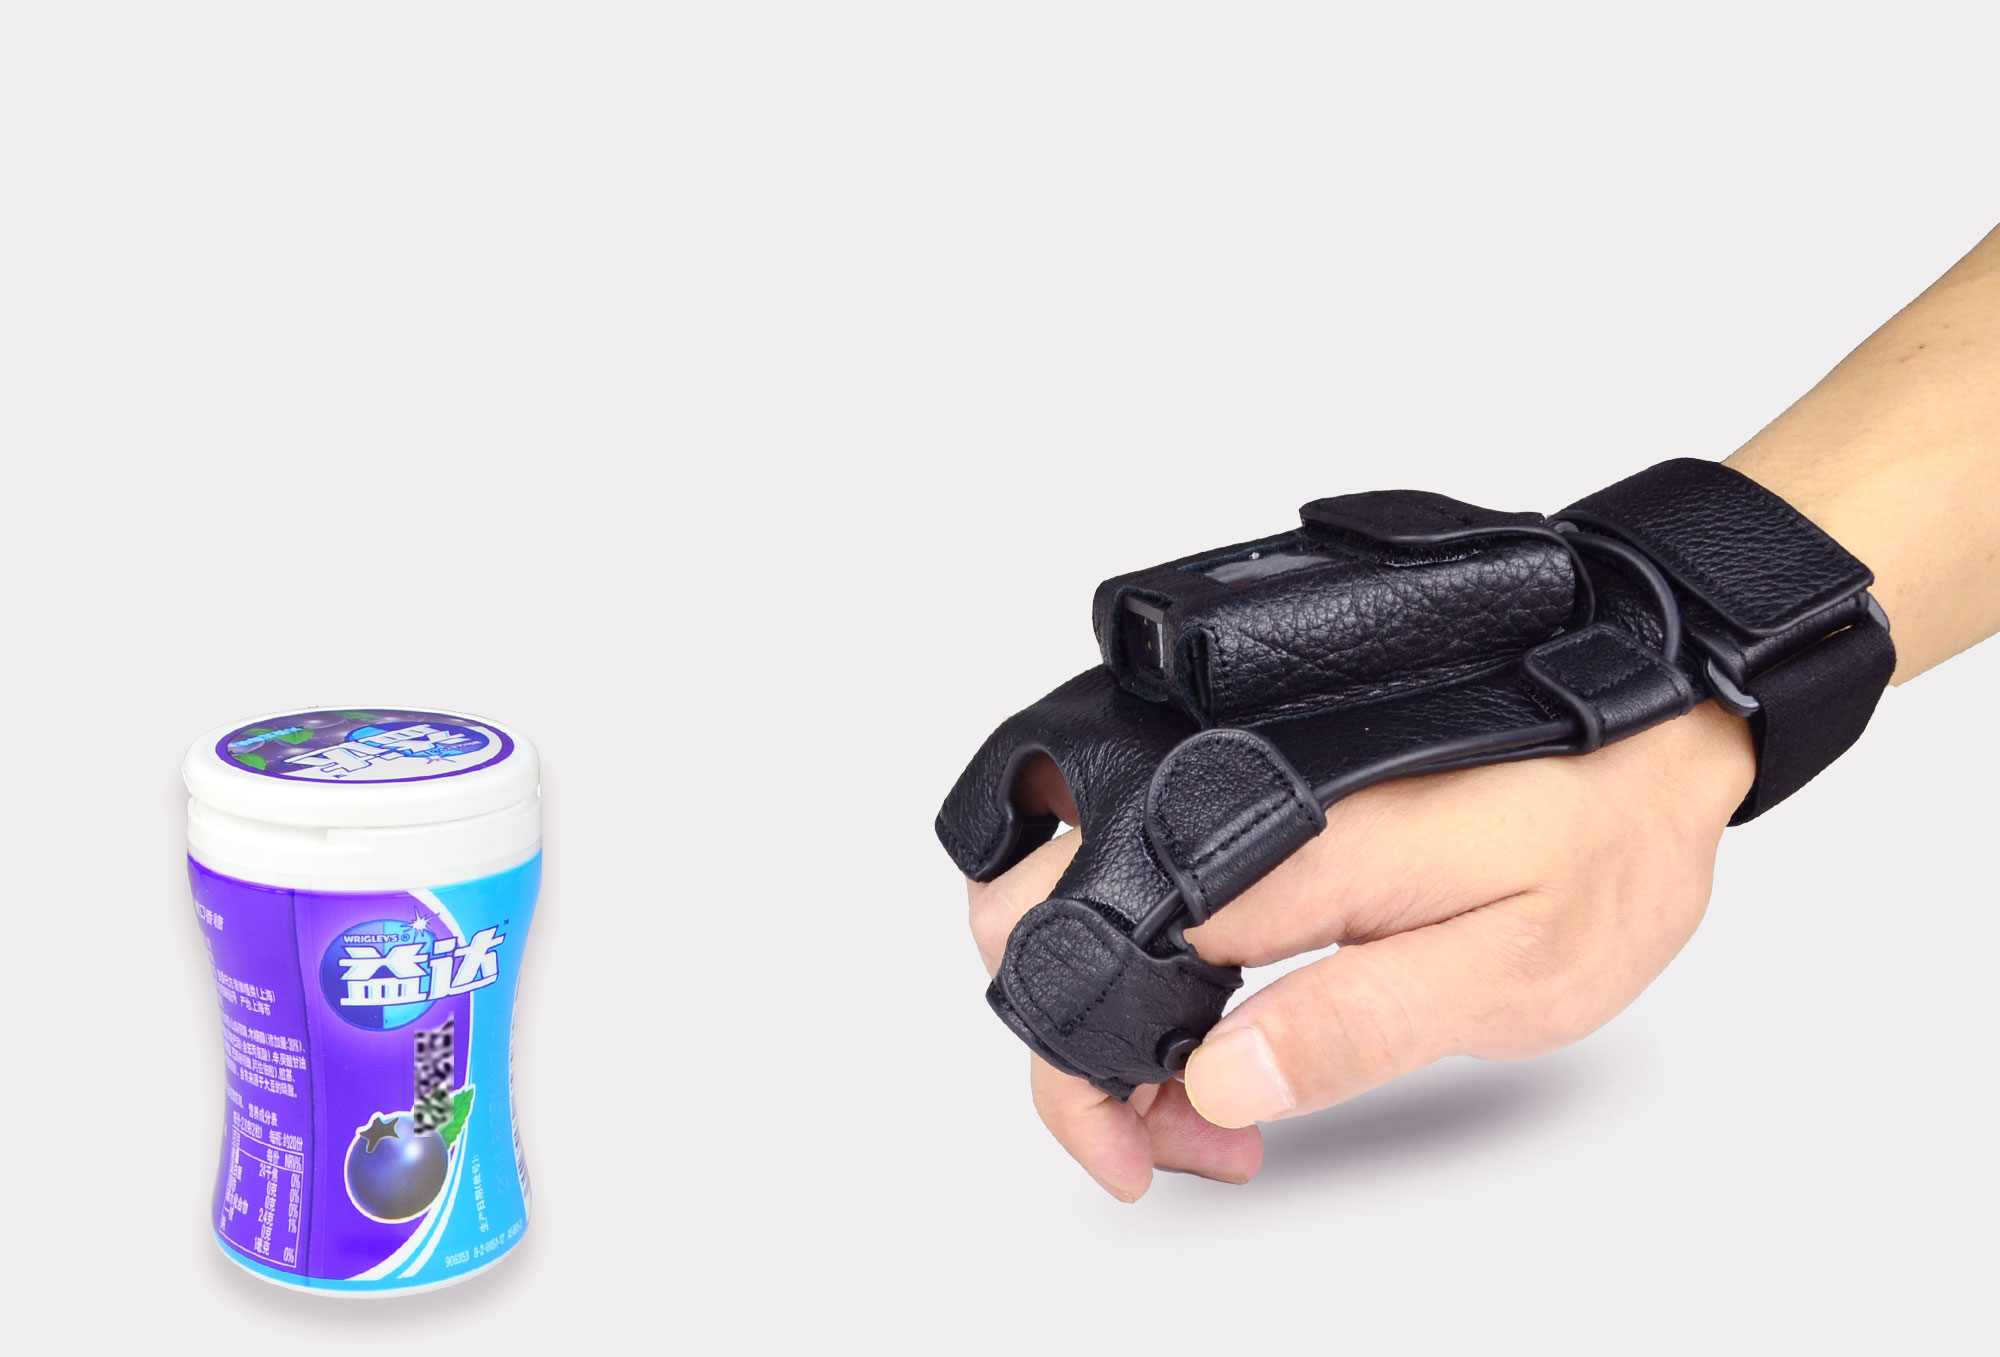 FINGER TRIGGER GLOVE HELP YOU IMPROVE INVENTORY MANAGEMENT